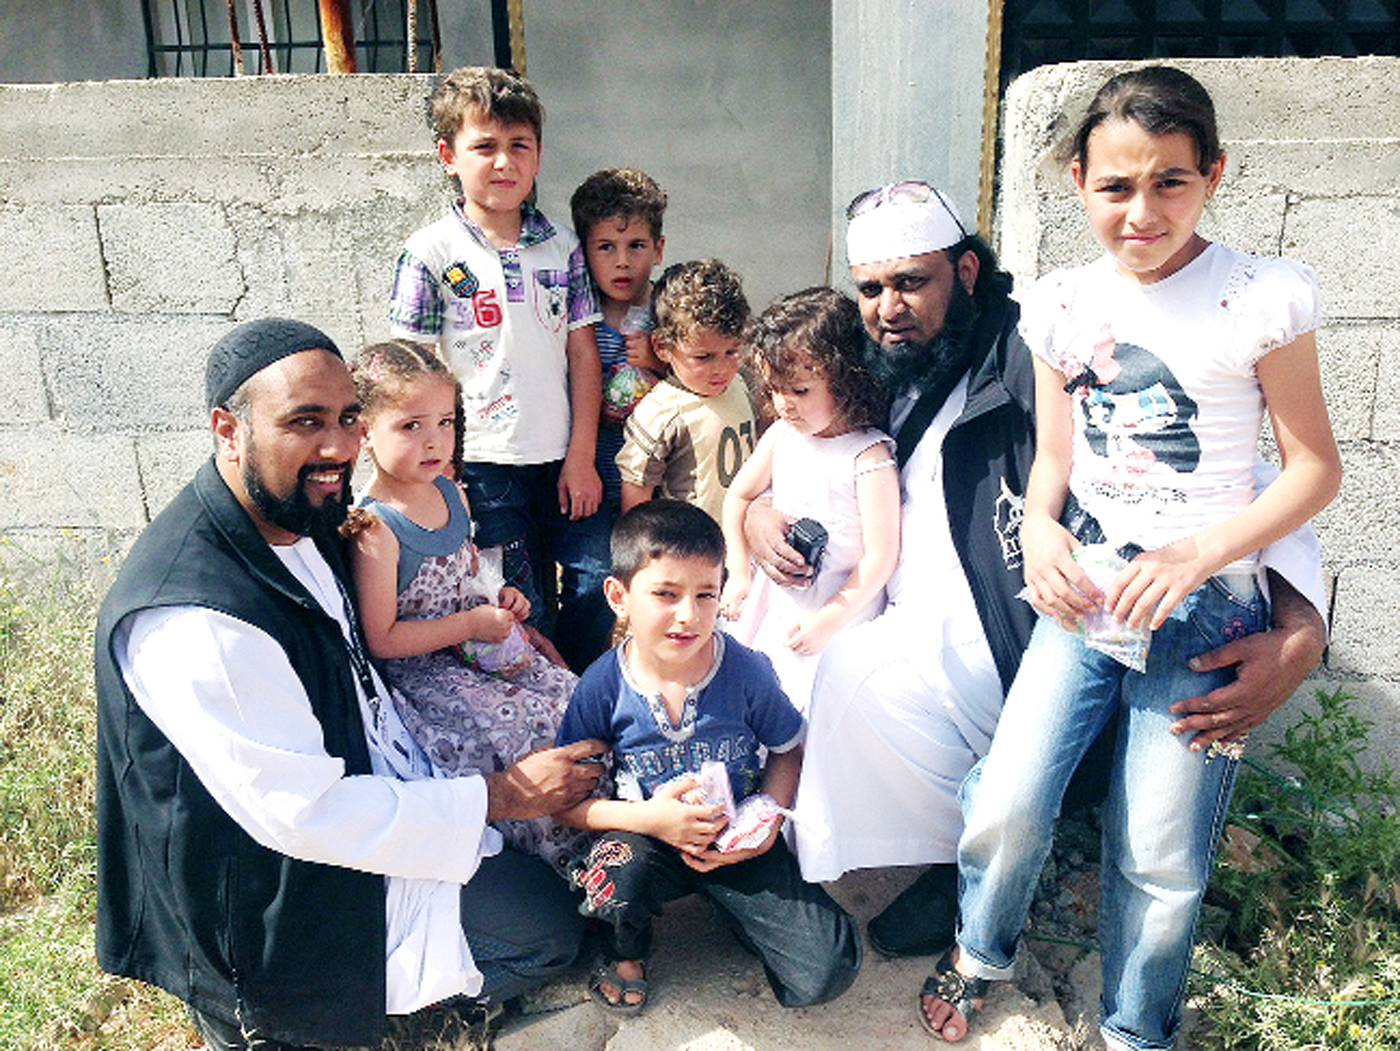 East Lancs charity, Al Imdaad Foundation UK, brings flour power to refugees